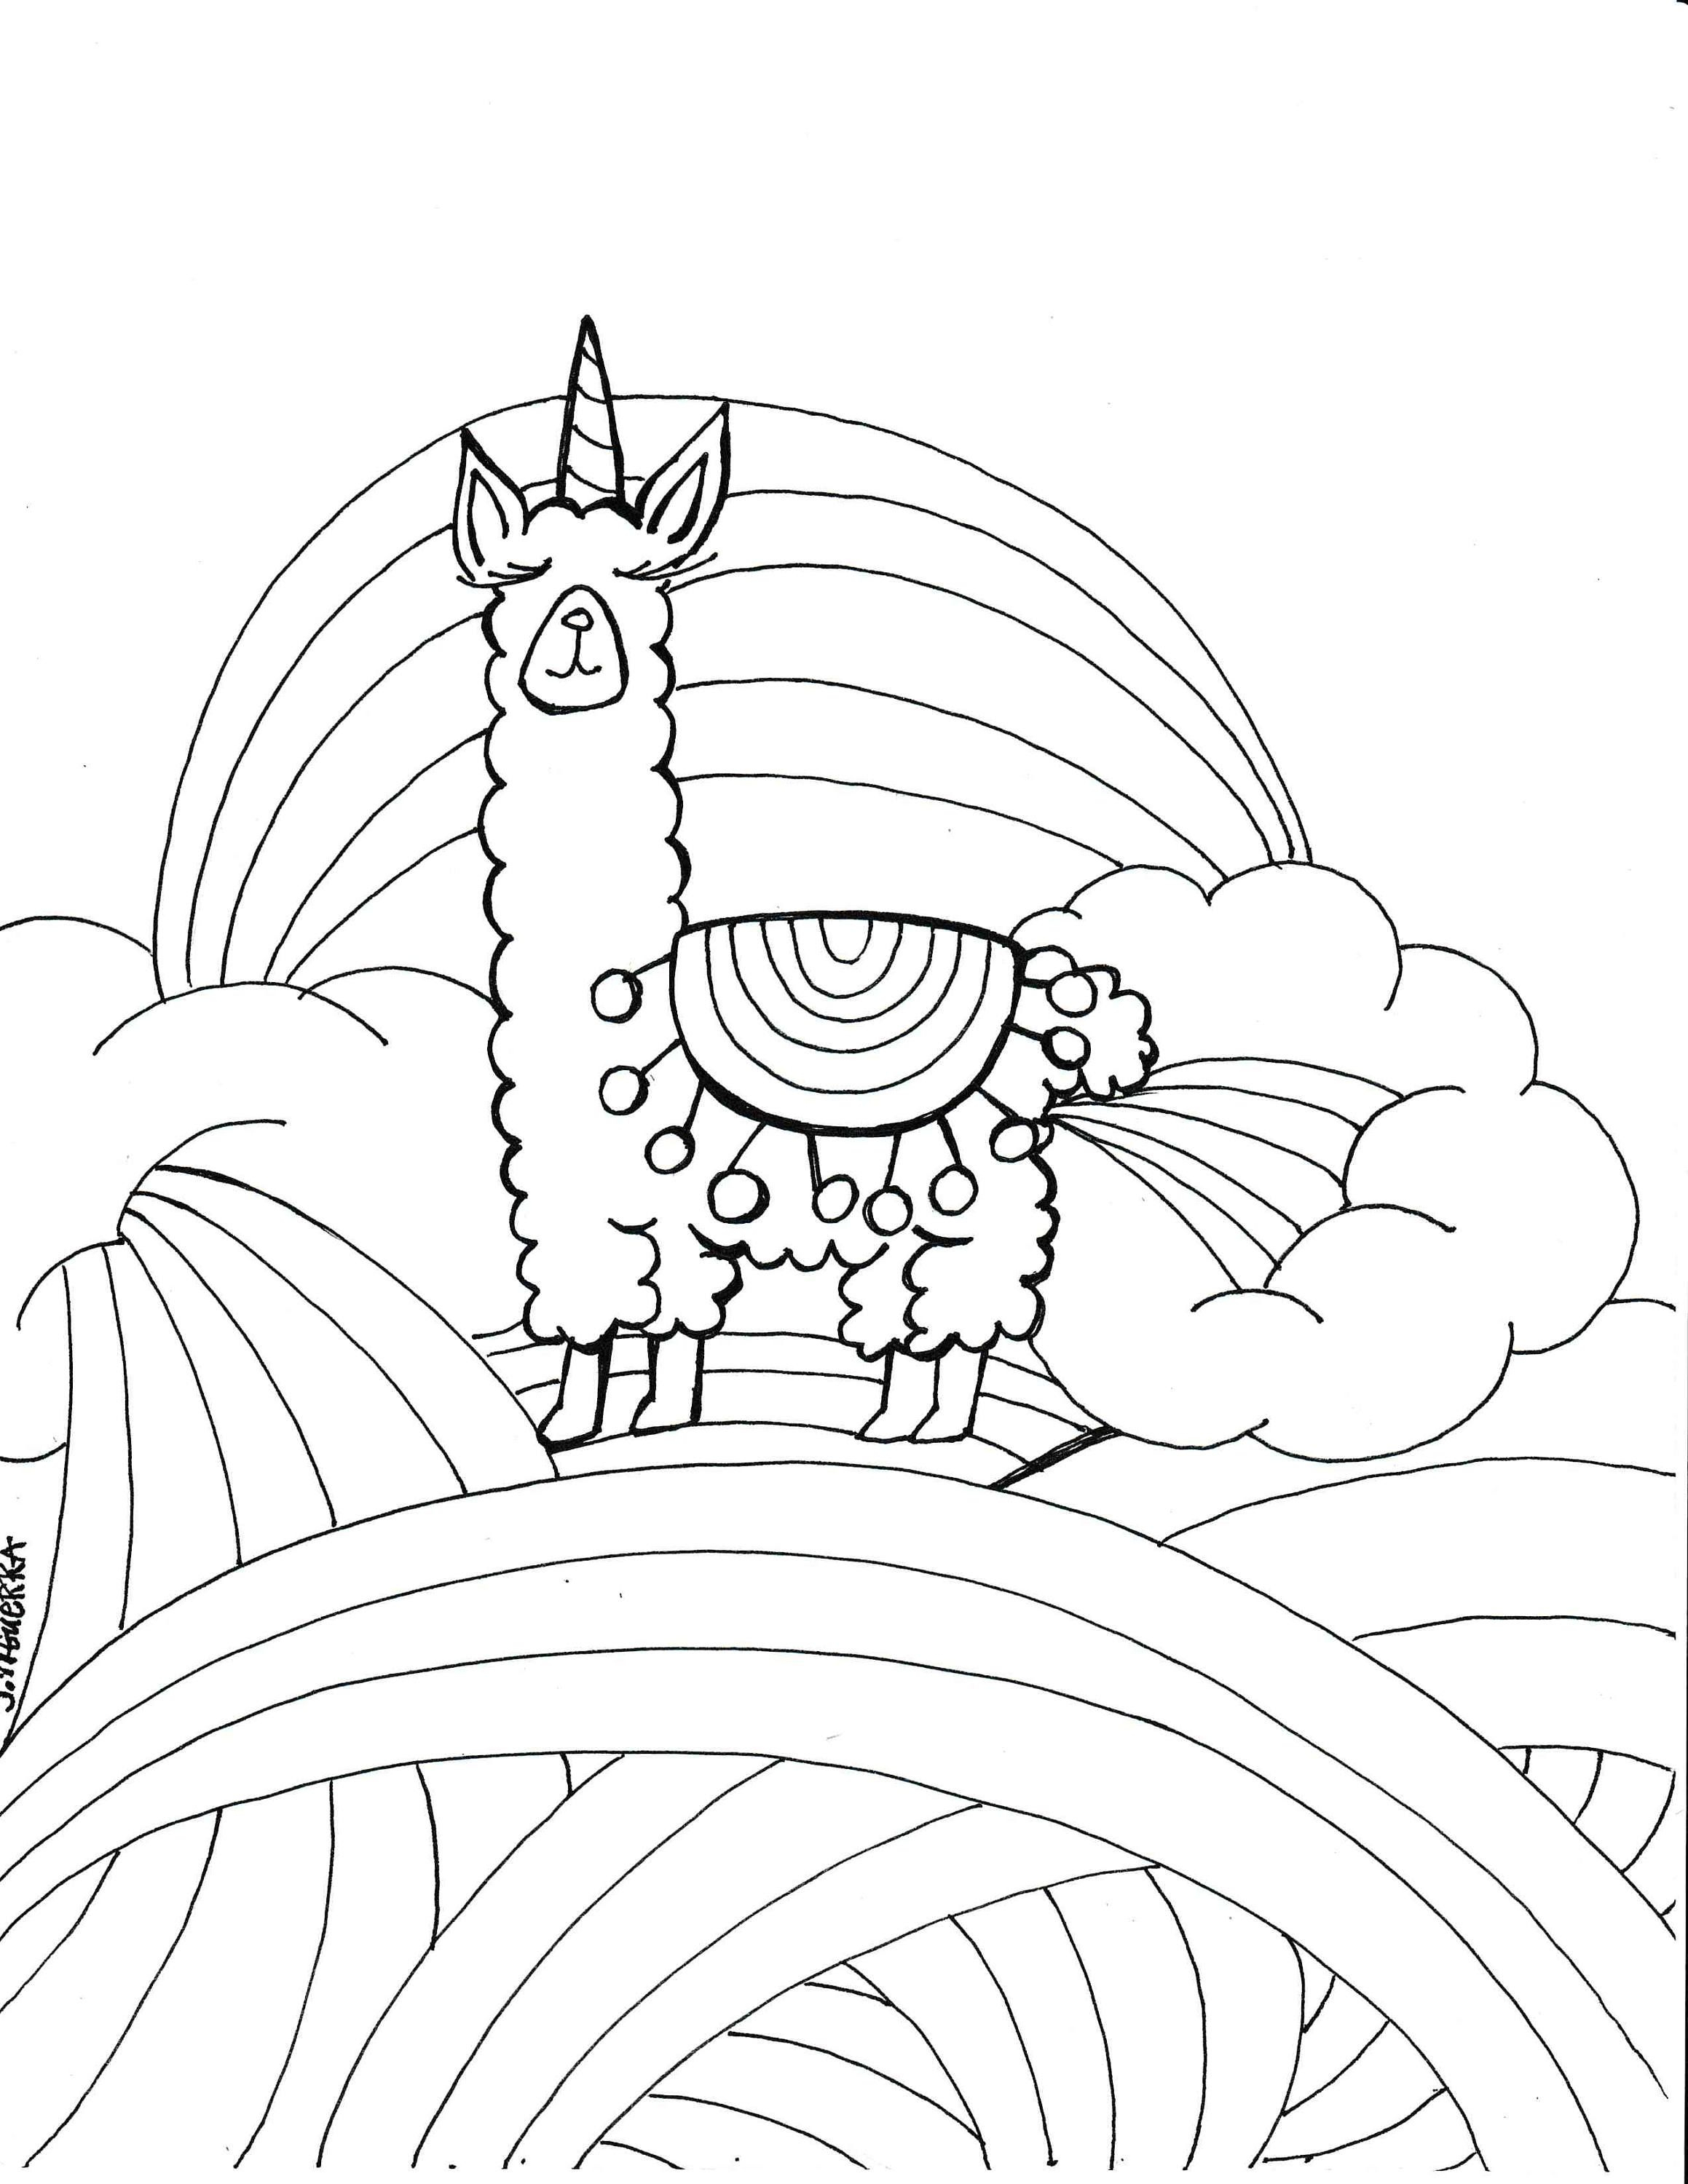 Llamacorn Coloring Page Pdf Printable Artjournalingart On Etsy | Colouring Worksheets Printable Pdf